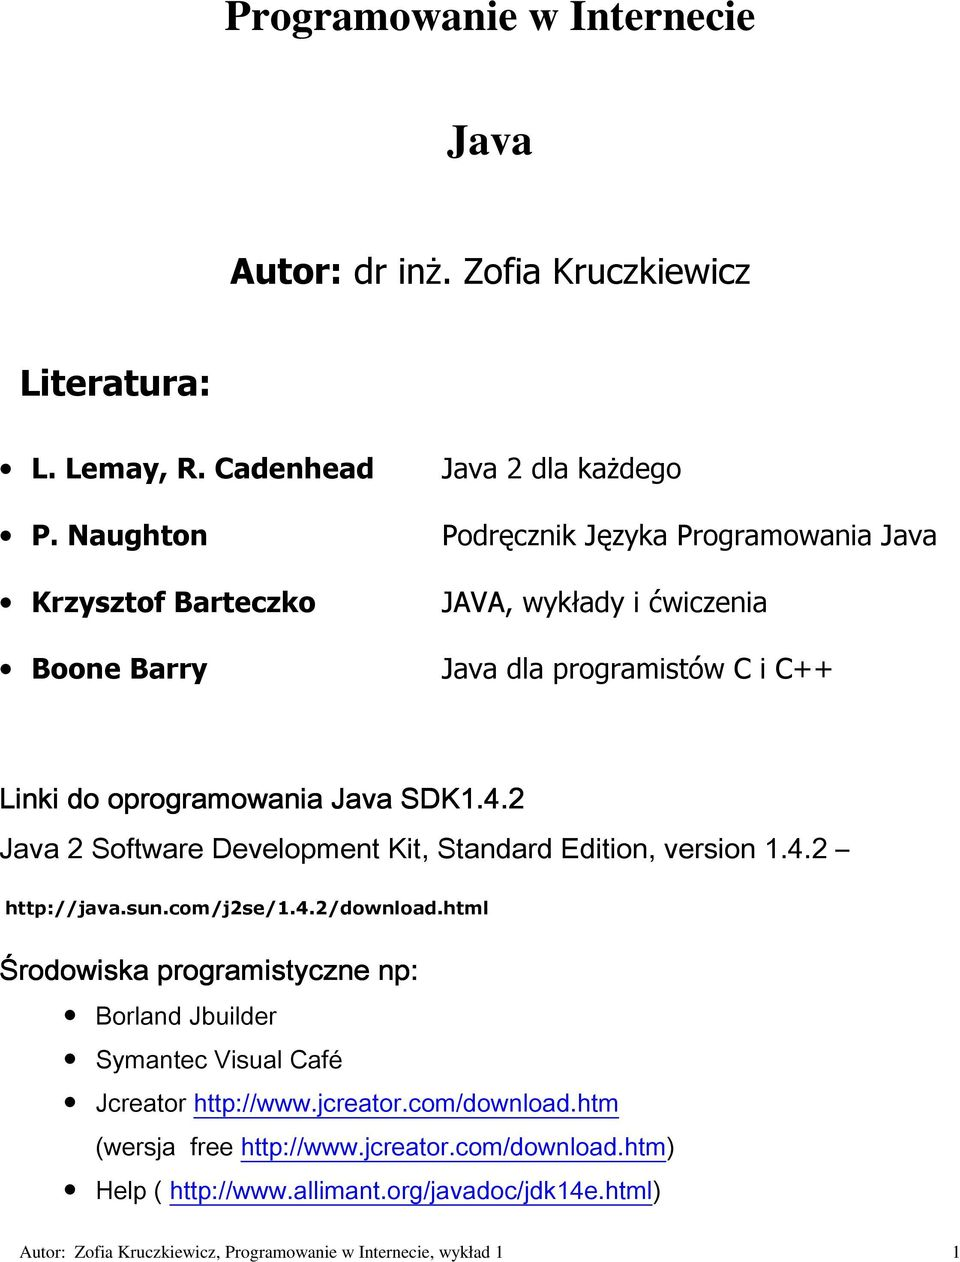 oprogramowania Java SDK1.4.2 Java 2 Software Development Kit, Standard Edition, version 1.4.2 http://java.sun.com/j2se/1.4.2/download.